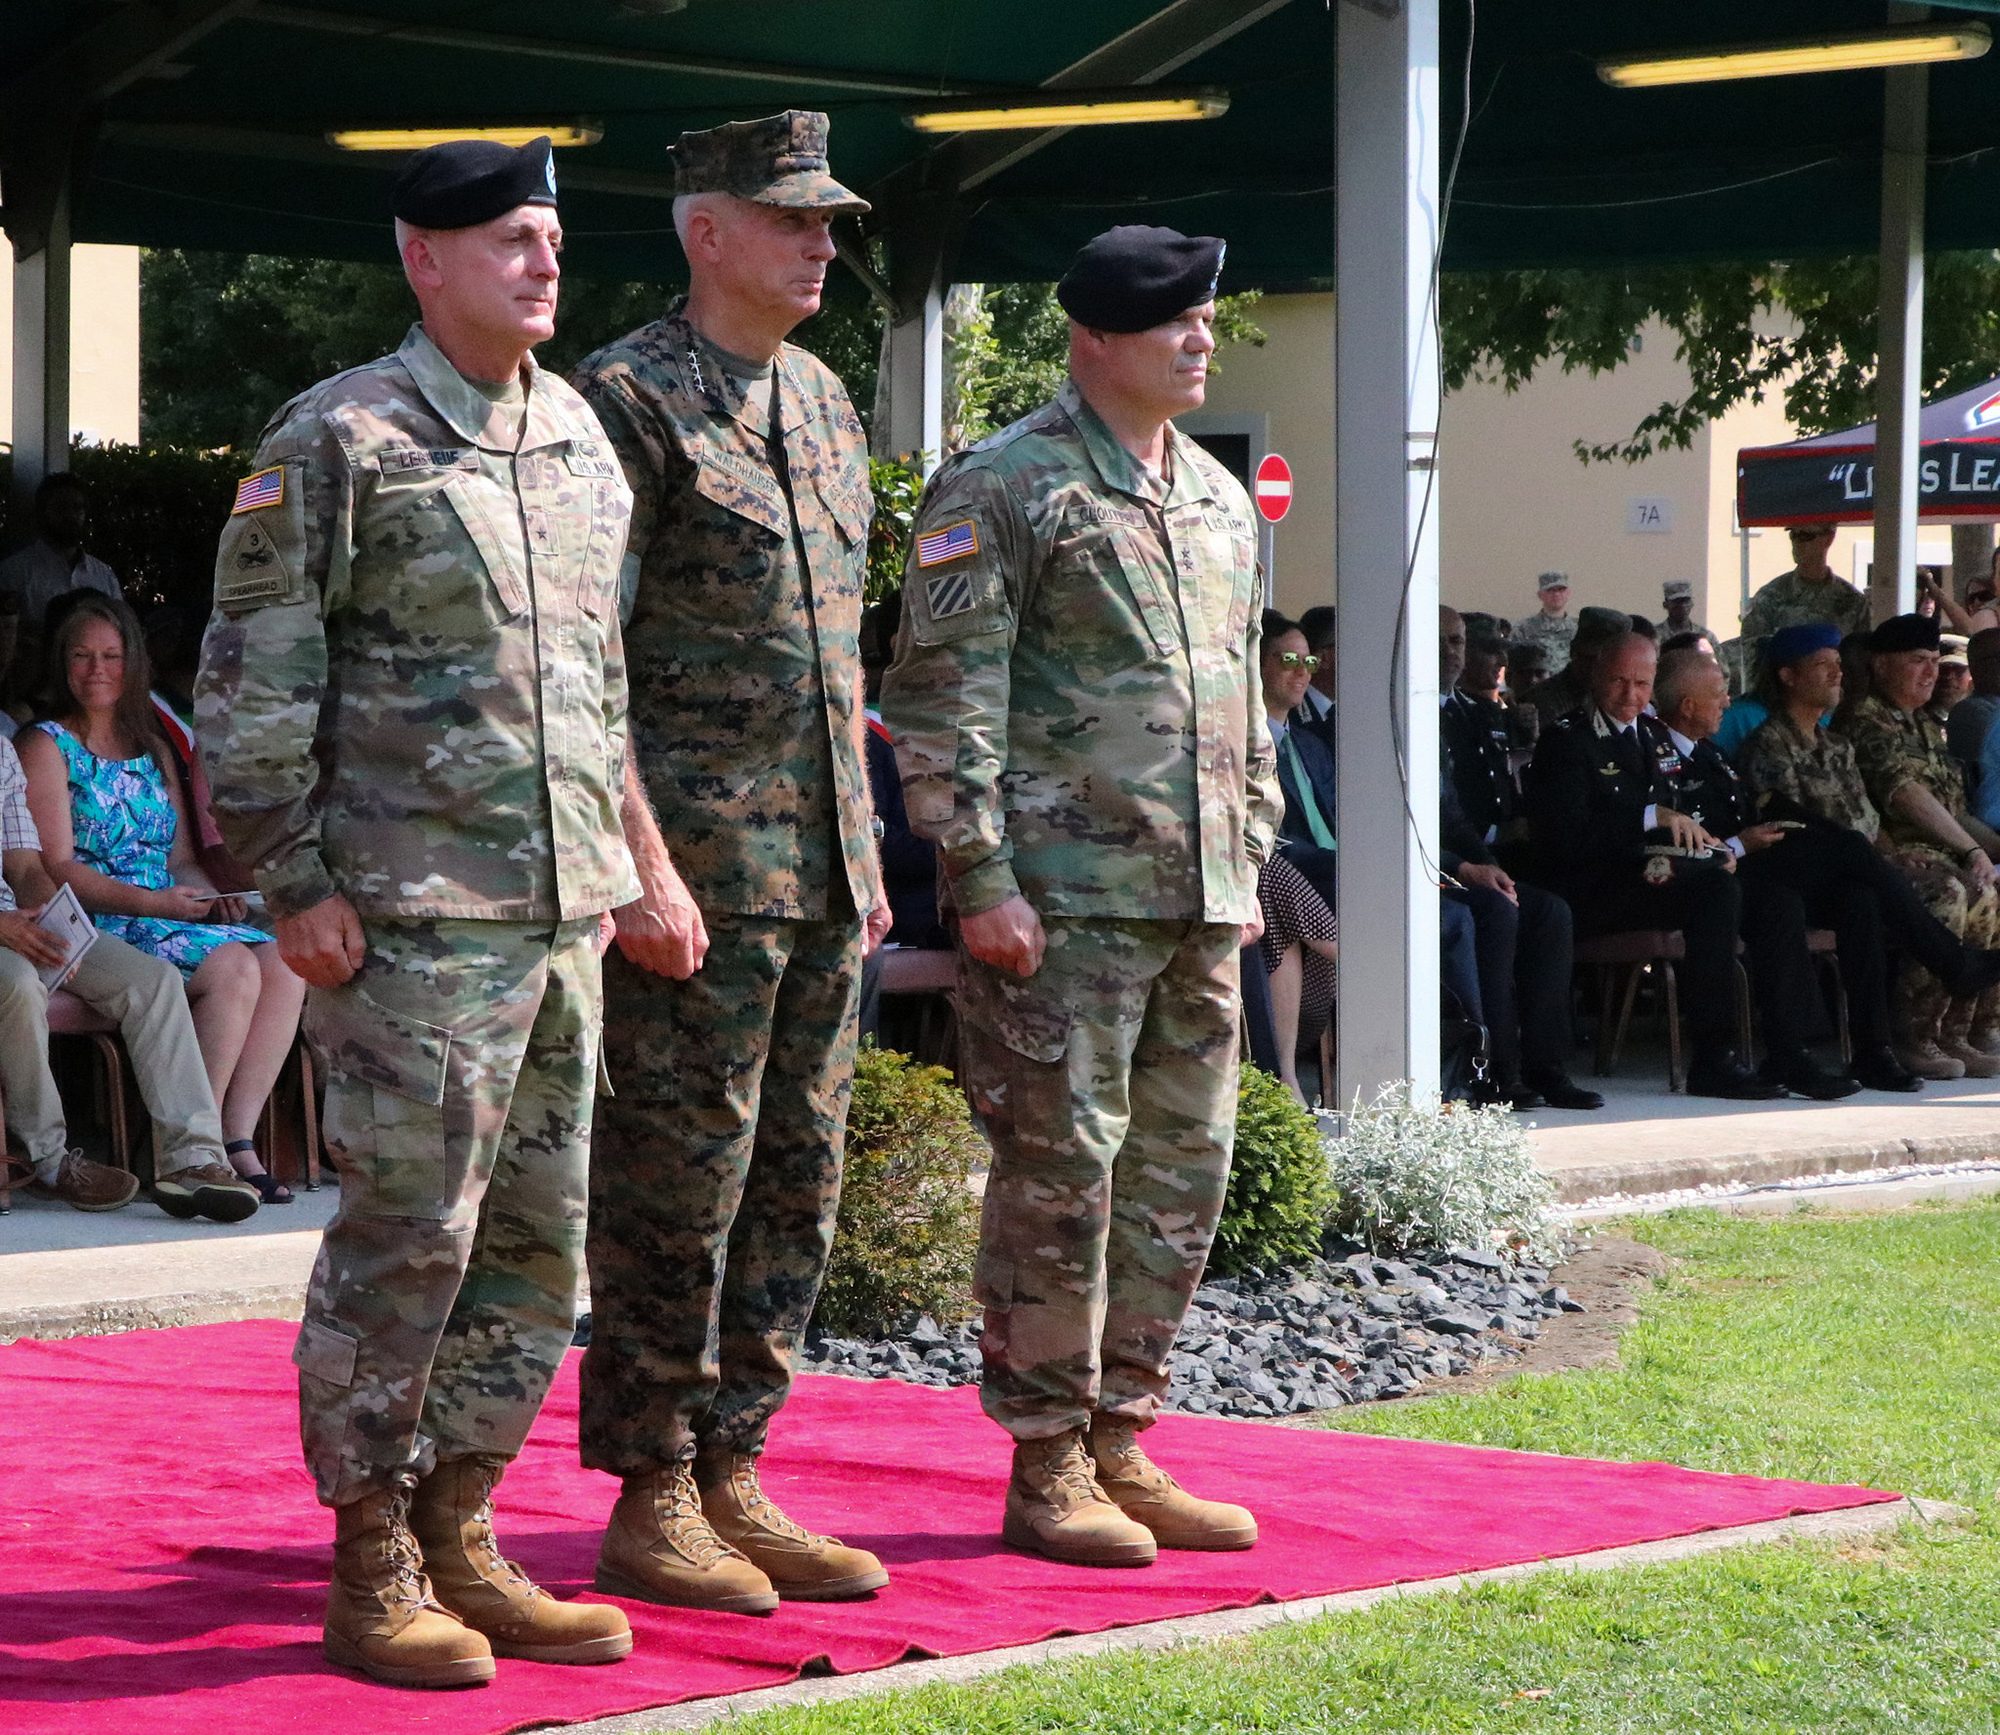 Brig. Gen. Eugene J. LeBoeuf, left, the outgoing U.S. Army Africa acting commanding general; Marine Gen. Thomas D. Waldhauser, center, the U.S. Africa Command commanding general; and Maj. Gen. Roger L. Cloutier, the incoming U.S. Army Africa commanding general, prepare for the passing of the guidon during the USARAF change of command ceremony, held at Caserma Ederle in Vicenza, Italy, Aug. 2, 2018. (U.S. Army photo by Sgt. Jennifer Garza)